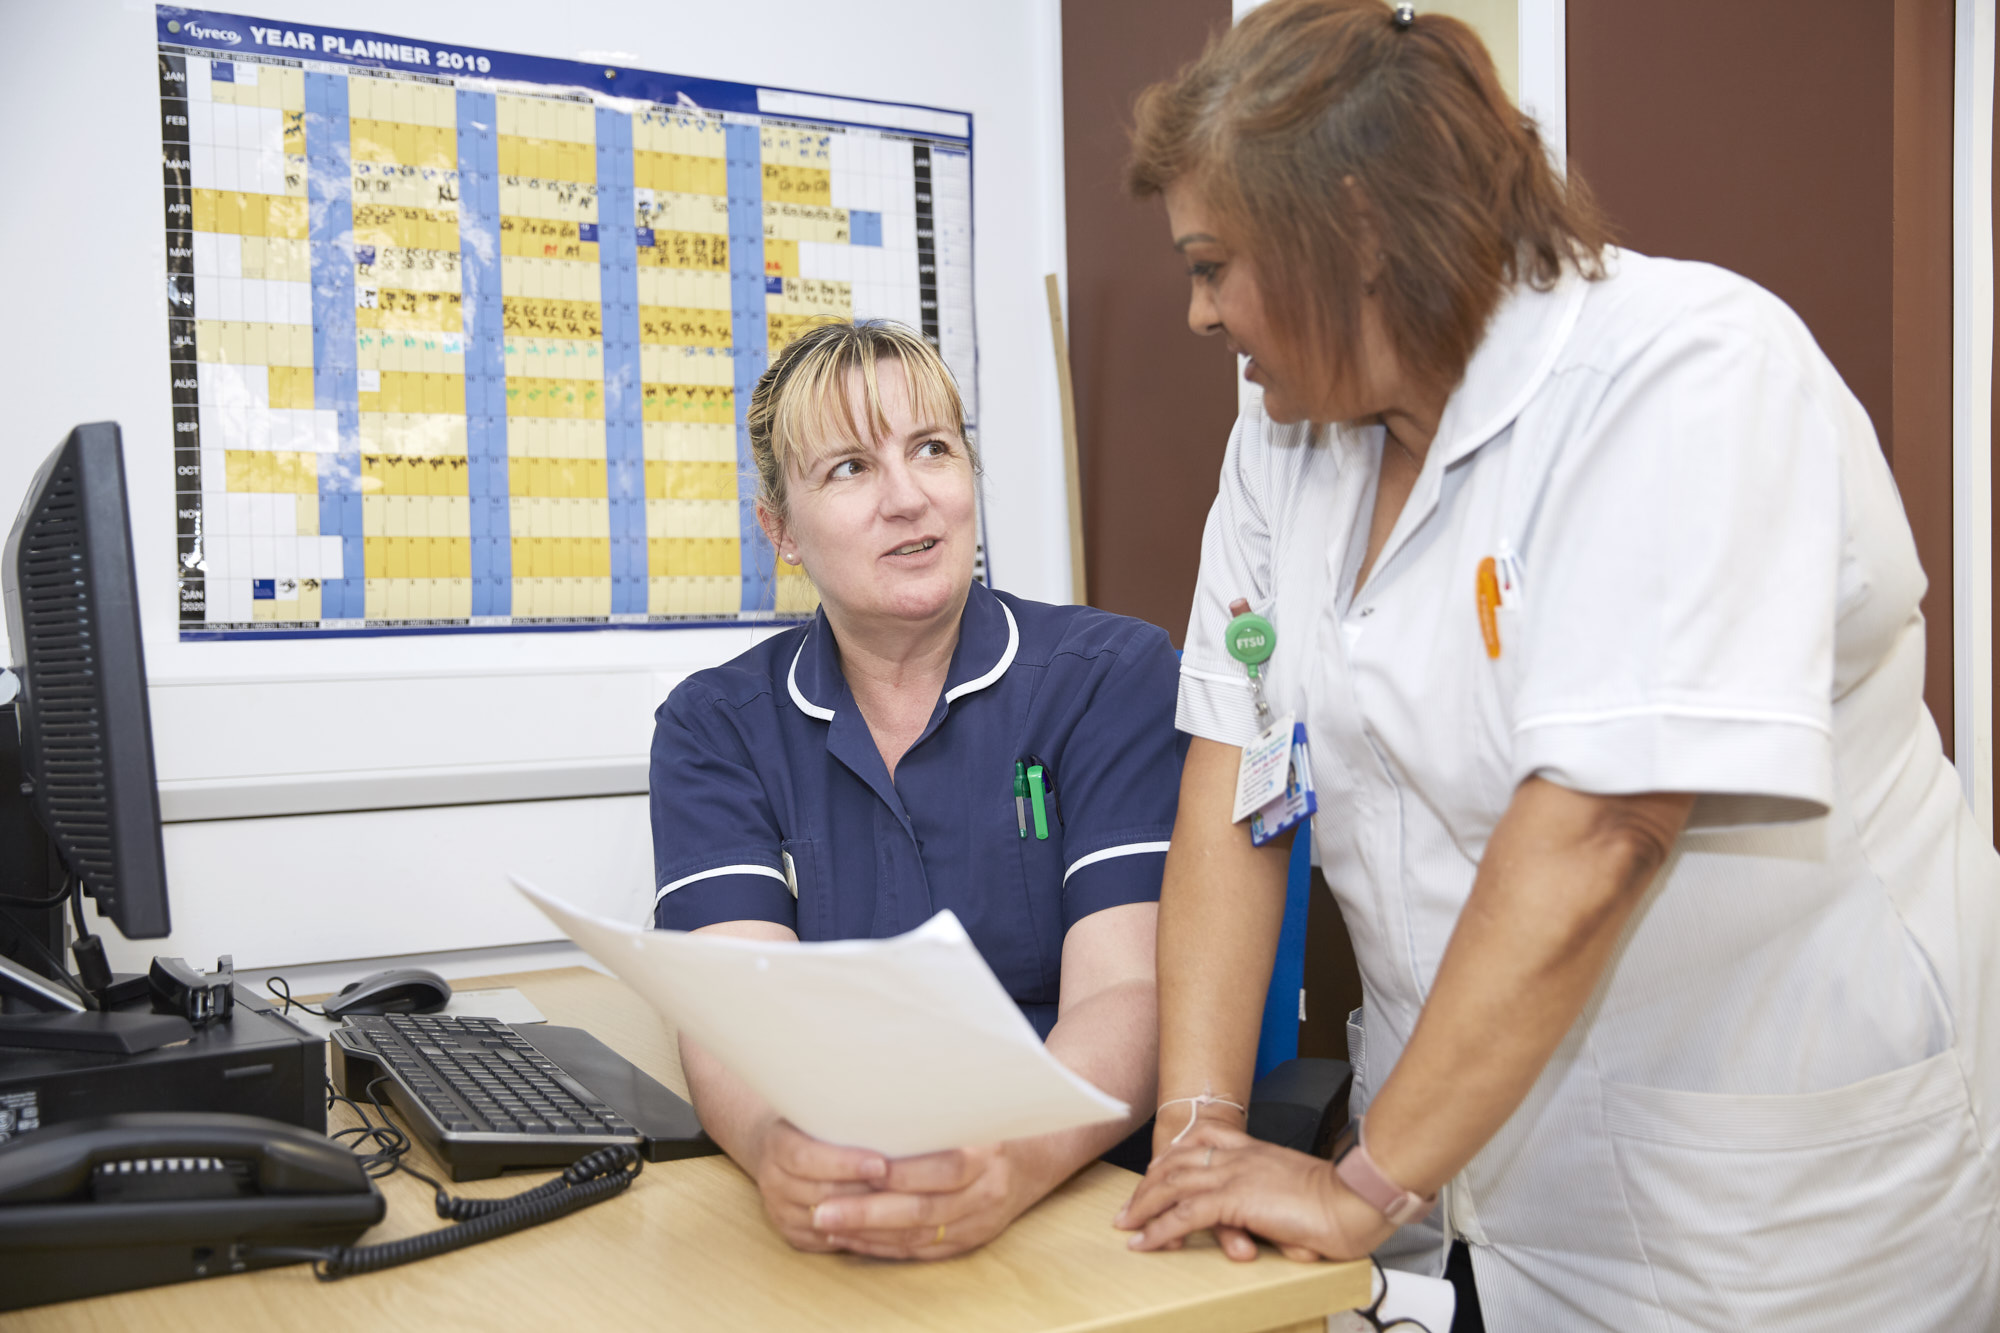 Hospital discharge is not rocket science – why isn't it working?